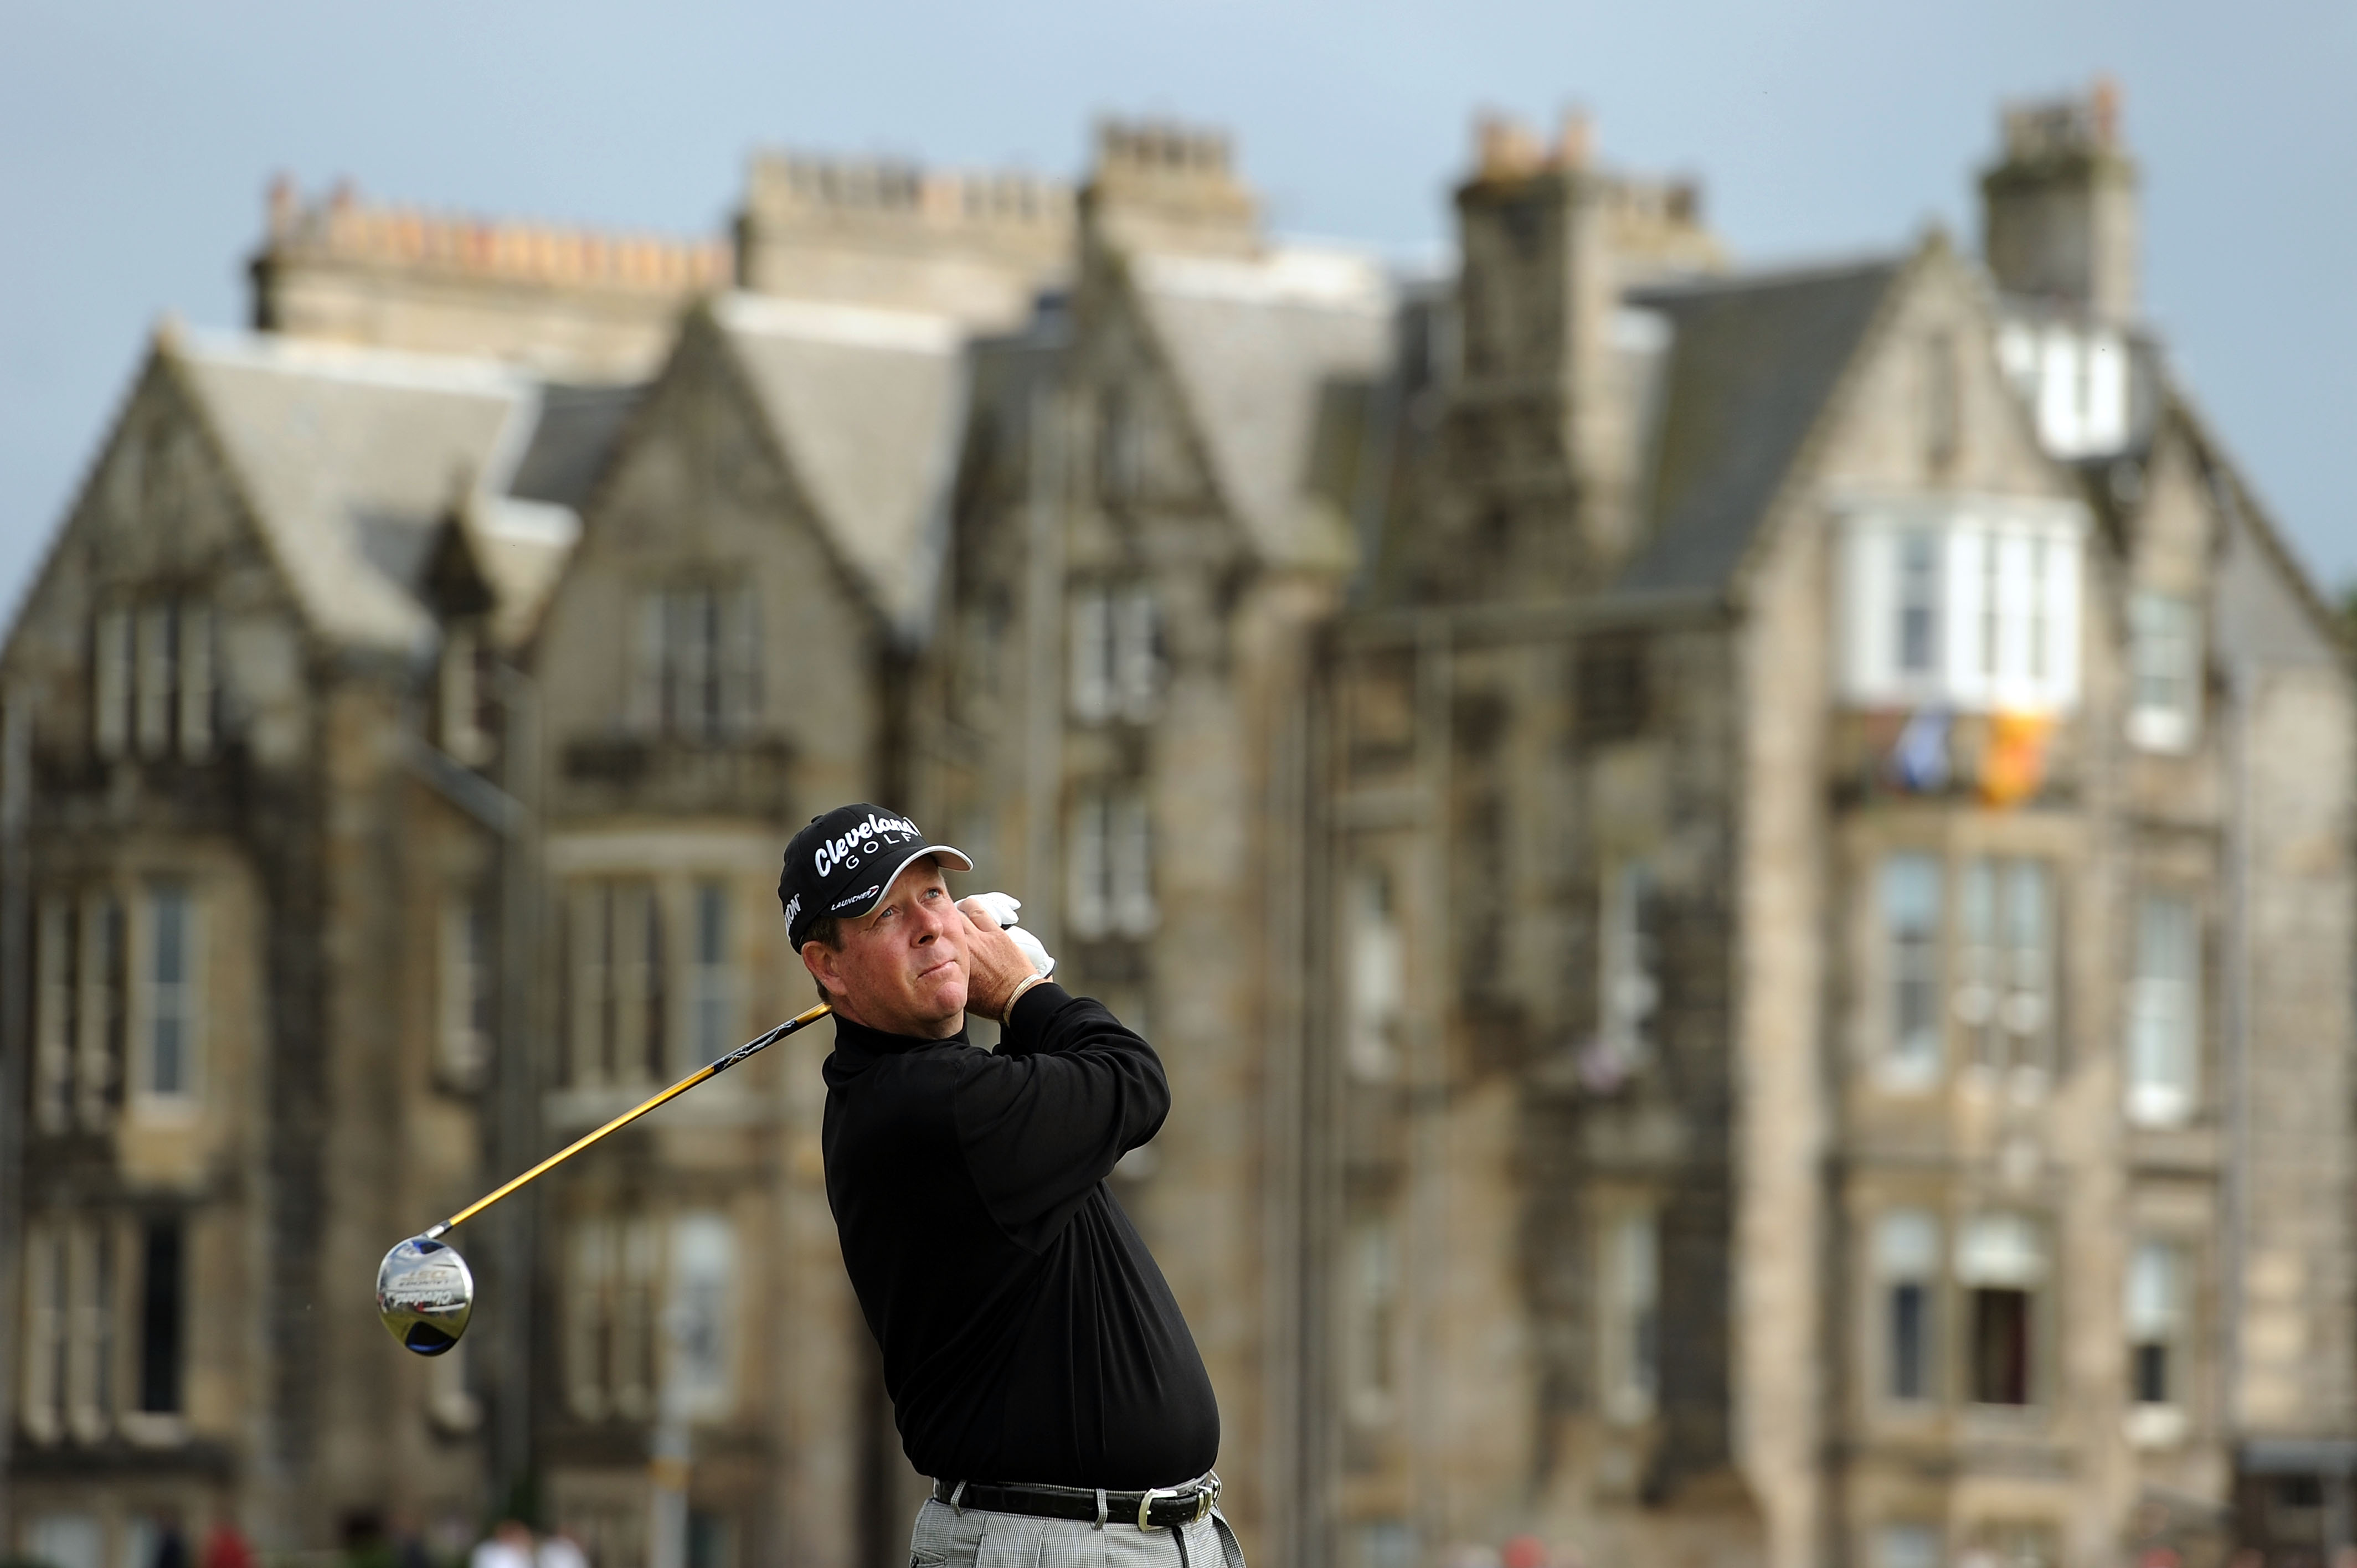 ST ANDREWS, SCOTLAND - JULY 15:  Glen Day of the USA tees off on the 2nd hole during the first round of the 139th Open Championship on the Old Course, St Andrews on July 15, 2010 in St Andrews, Scotland.  (Photo by Harry How/Getty Images)